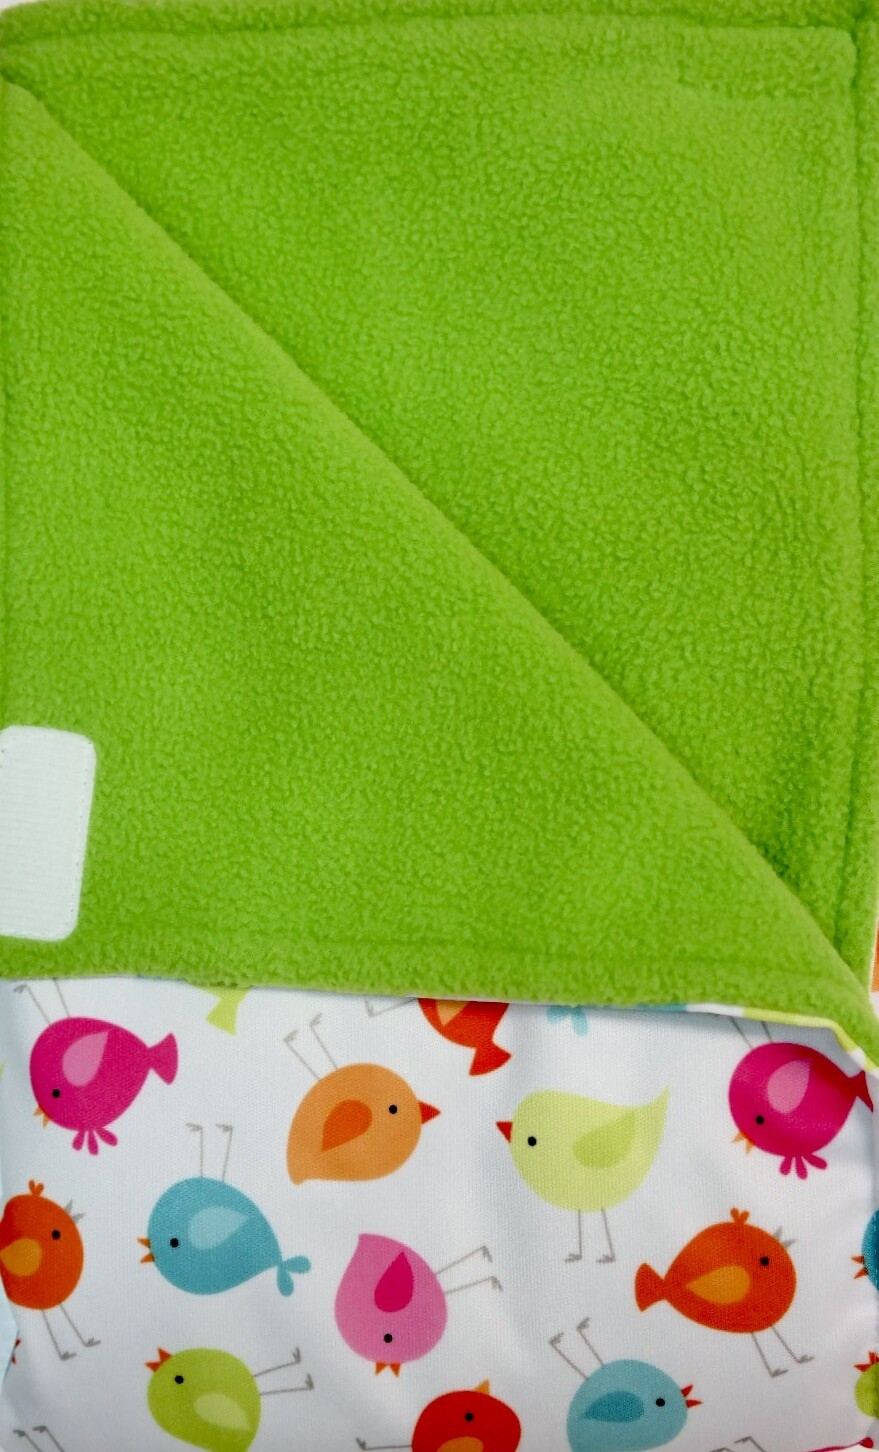 Pitt Patt Blanket 8C-Bird/Green